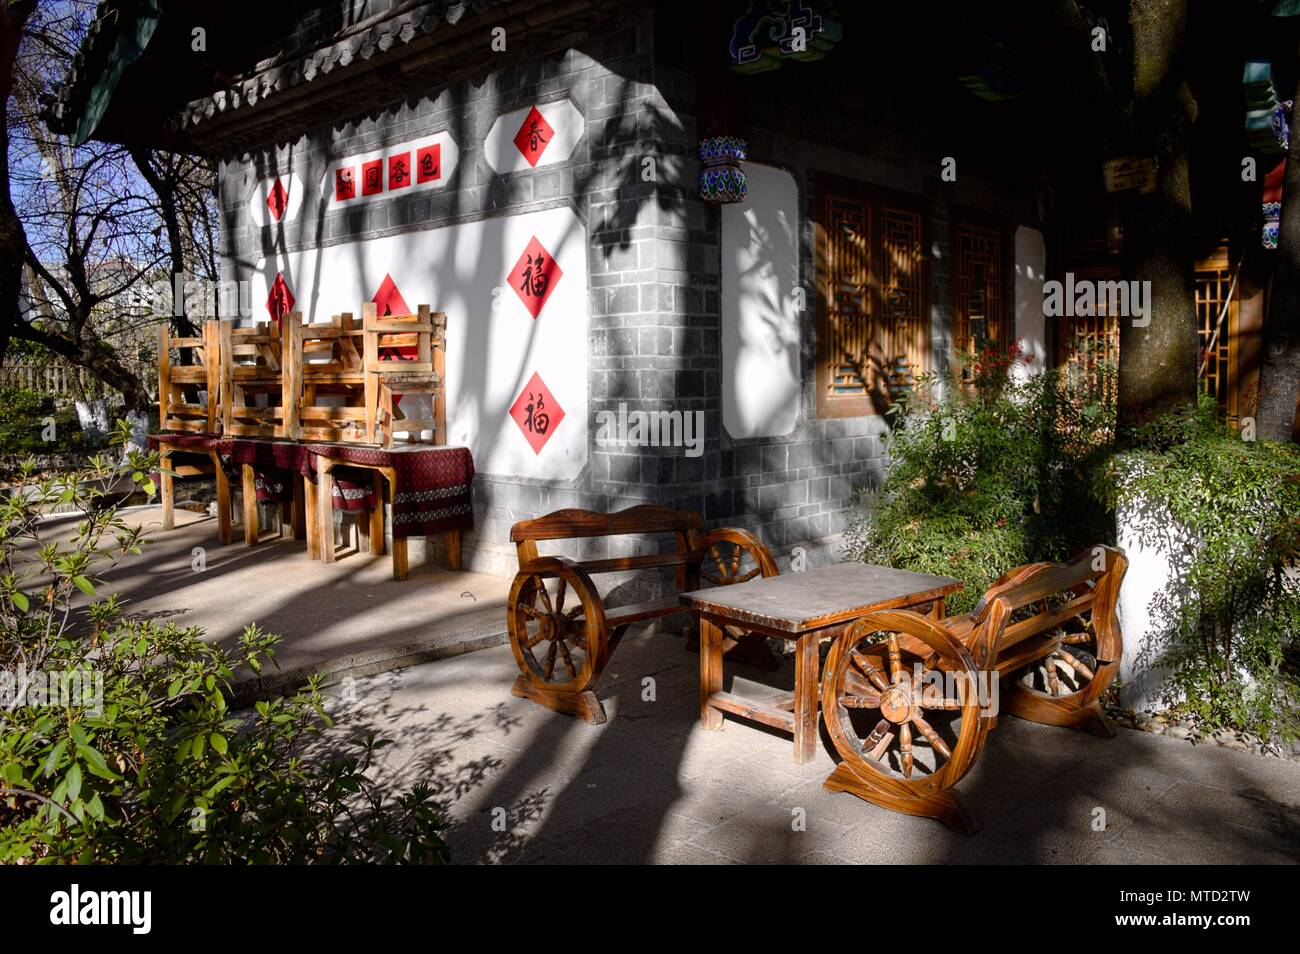 Wooden table with wheels in the garden (Lijiang, Yunnan, China) - Stock Image